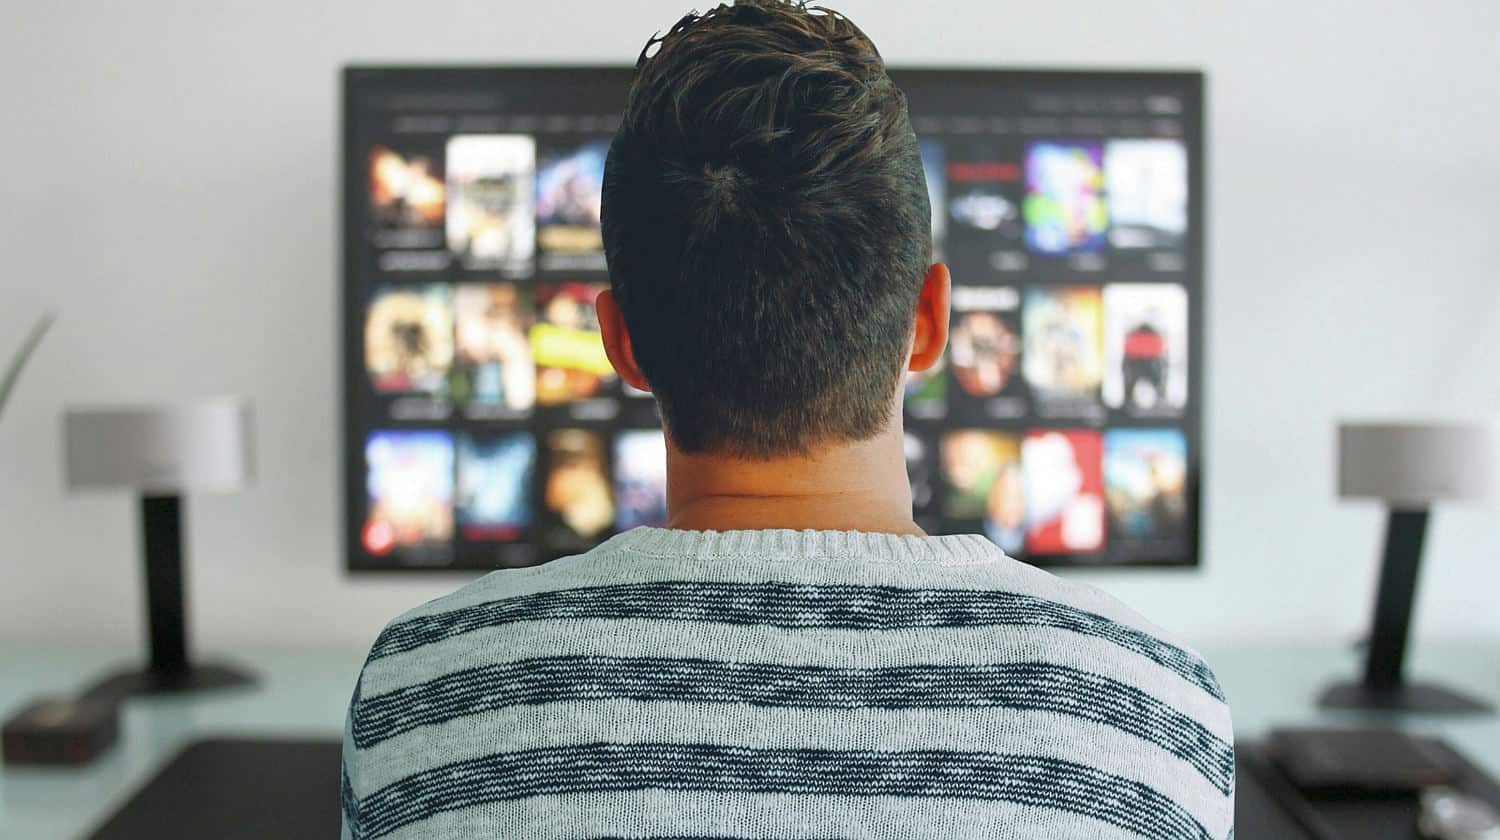 Feature | tv man watching room office | Streaming Devices Face Off: Chromecast VS Fire Stick